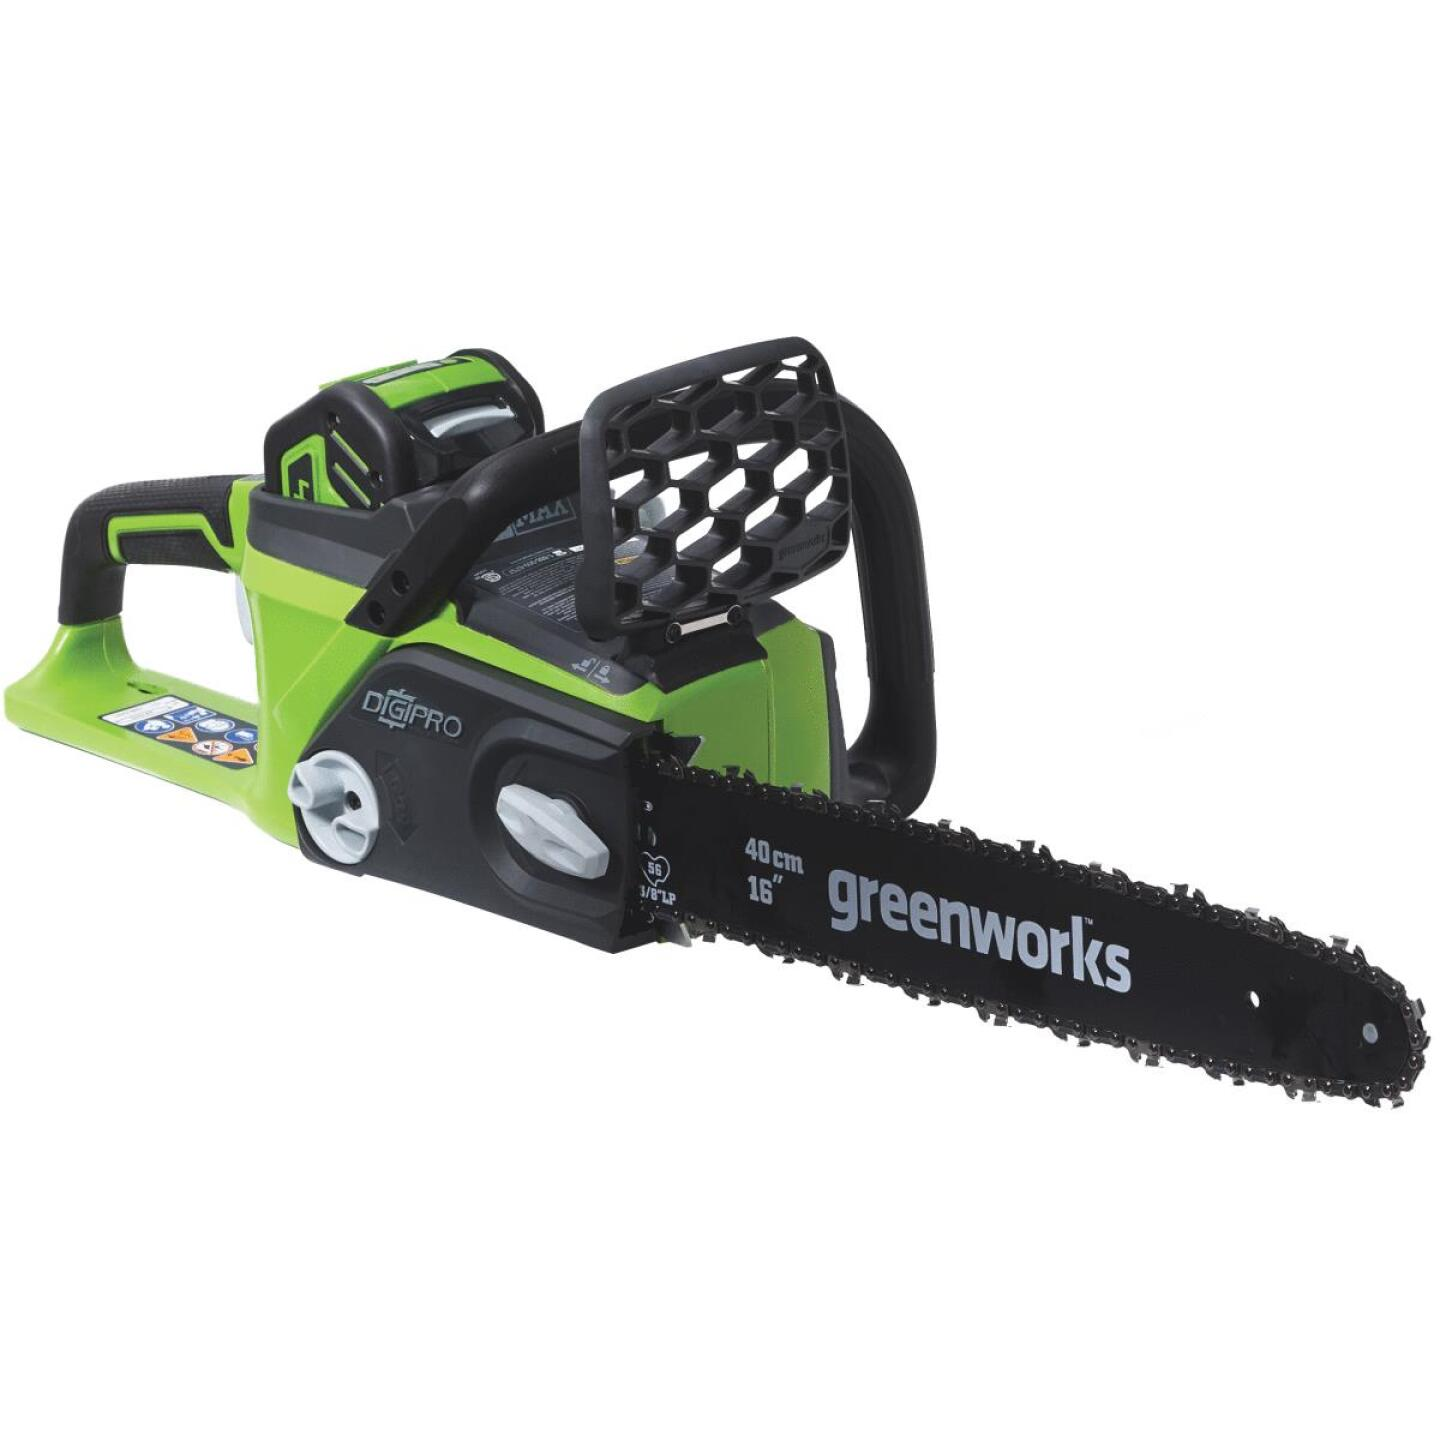 Greenworks G-MAX 16 In. 40V Lithium Ion Brushless Cordless Chainsaw Image 5